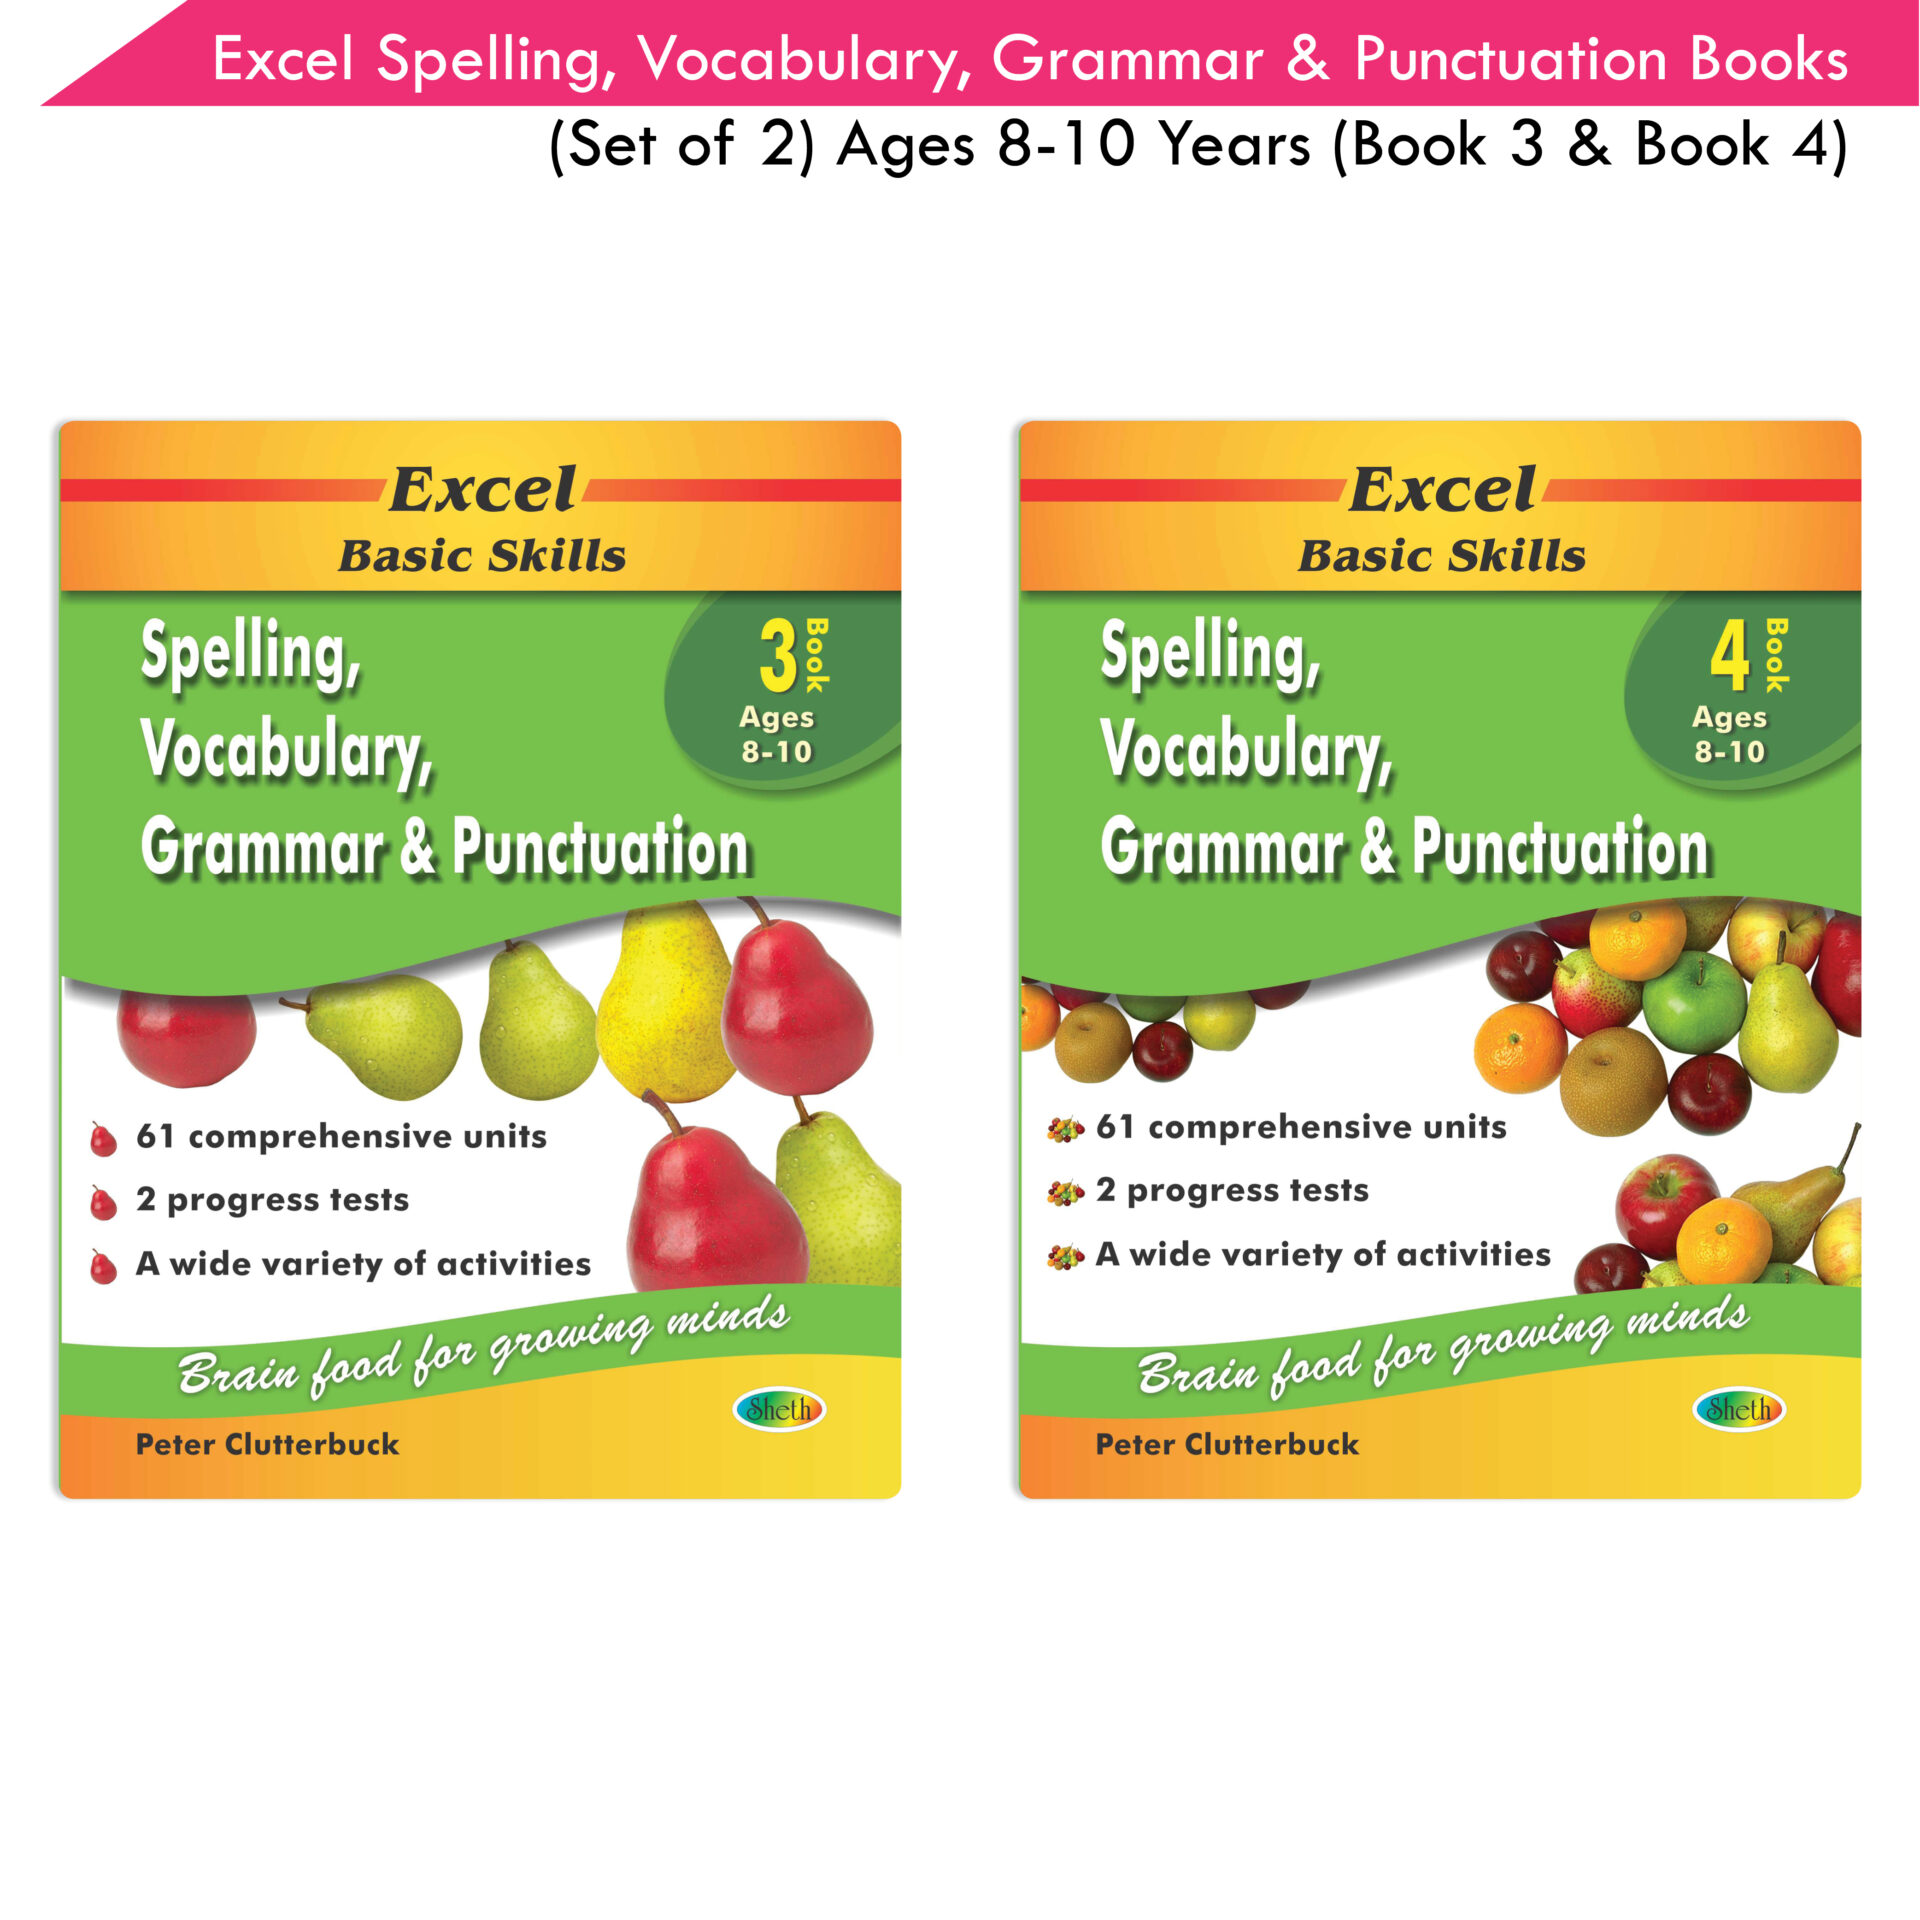 Excel Basic Skills Spelling Vocabulary Grammar and Punctuation Book Set Ages 8 10 Set of 2 1